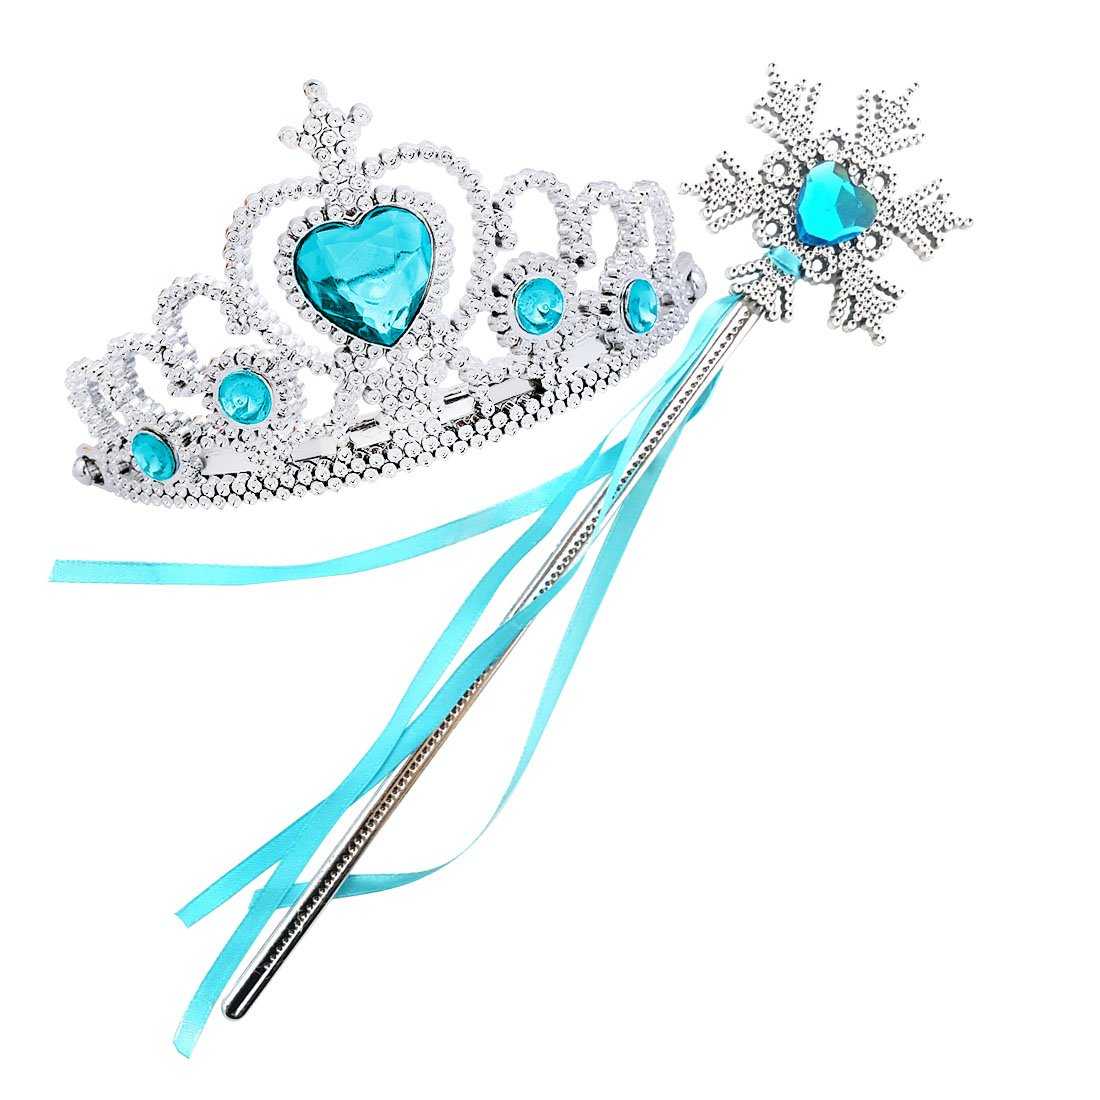 Jeassi Princess Crown Tiara and Wand Set Silver Heart Jewel Princess accessories (Light Blue, Snowflake)